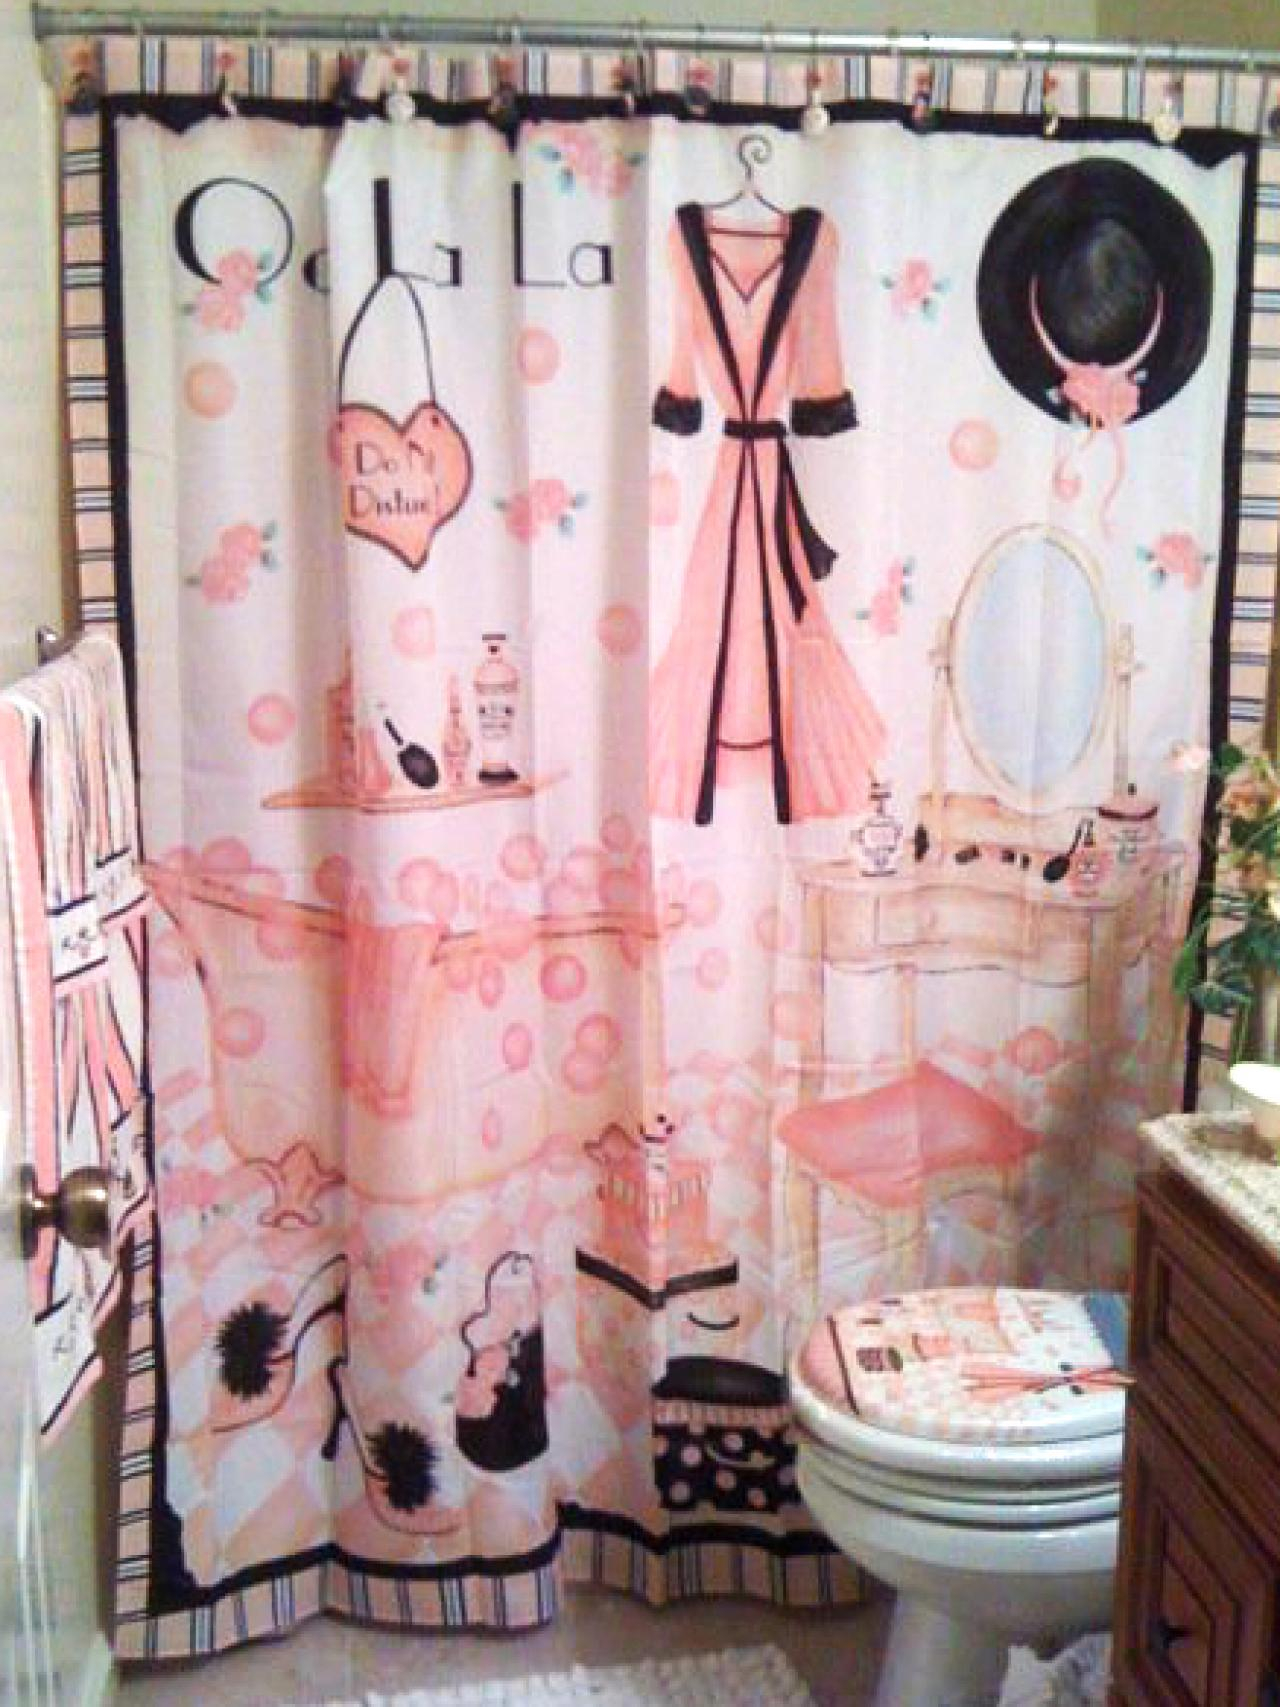 retro pin motif dots image aesthetic nostalgic polka grunge backdrop set curtain bathroom spots shower